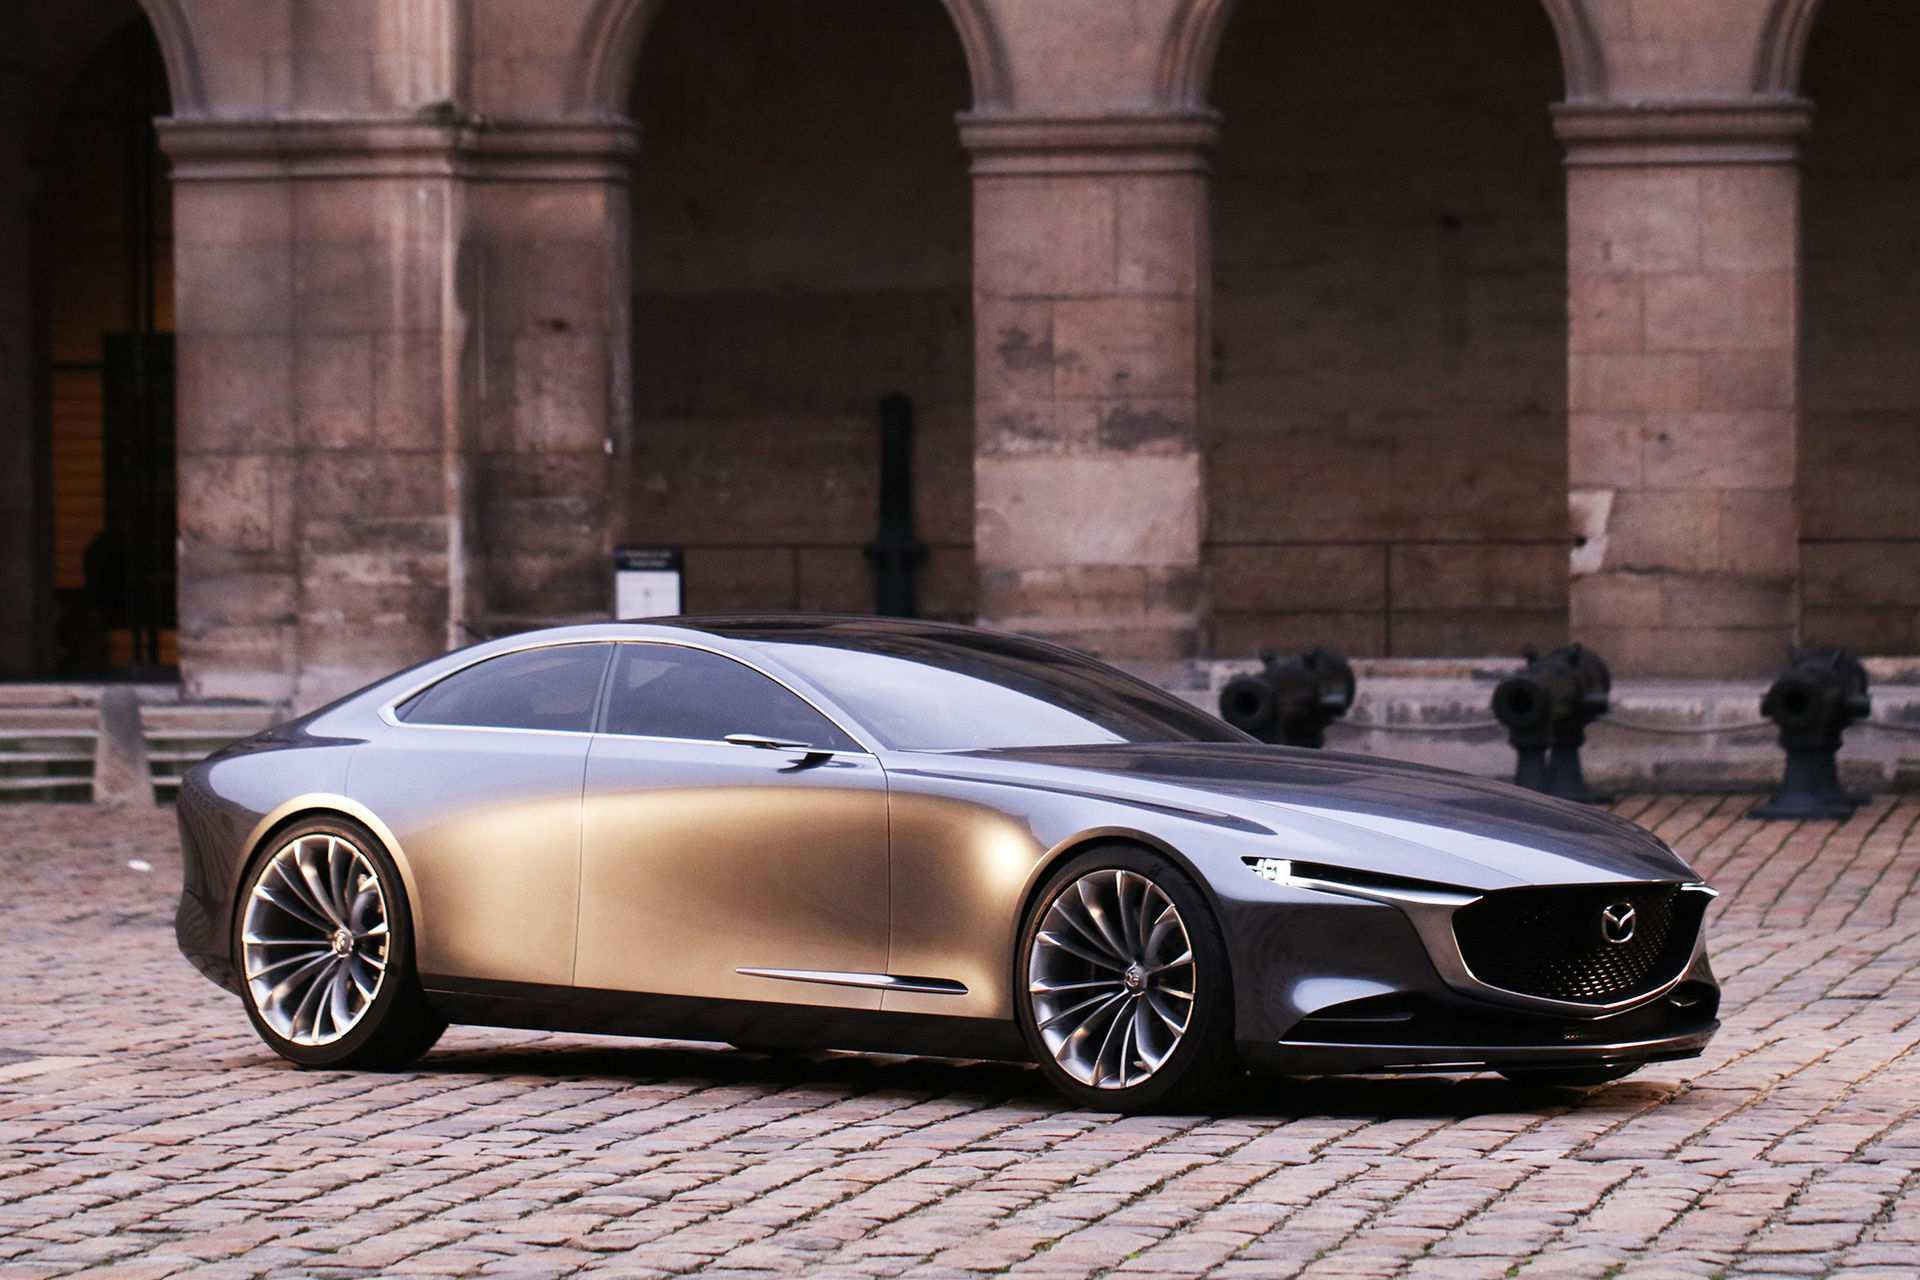 60 A Mazda Elbil 2020 Price And Release Date